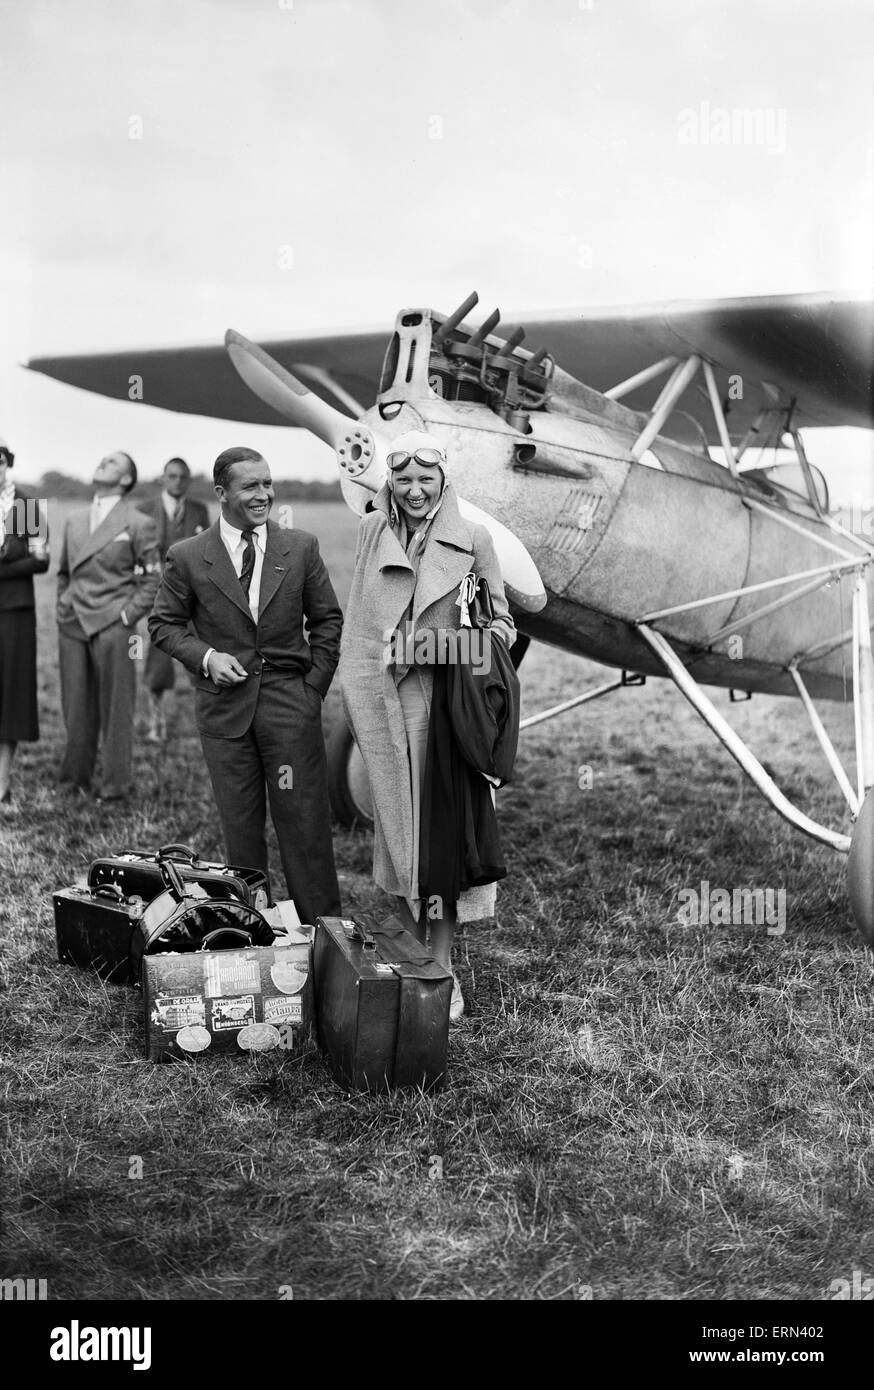 Pilots from 16 countries gather at Heston Aerodrome 1st September 1932 - Stock Image